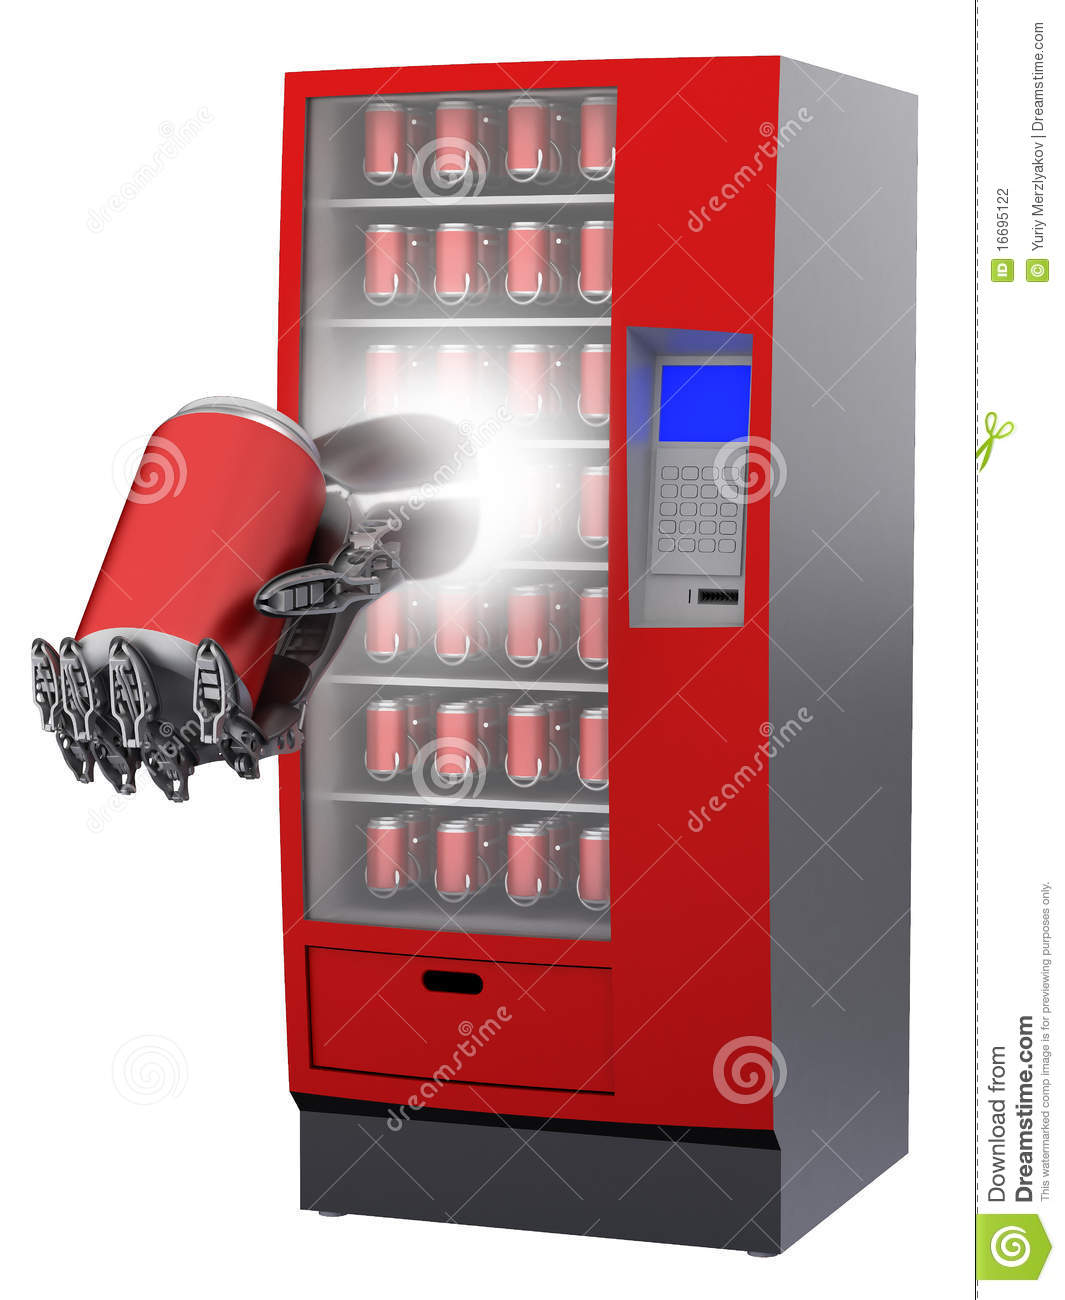 Coin Operated Juicer ~ Vending machine with cyborg hand and beverage in c stock